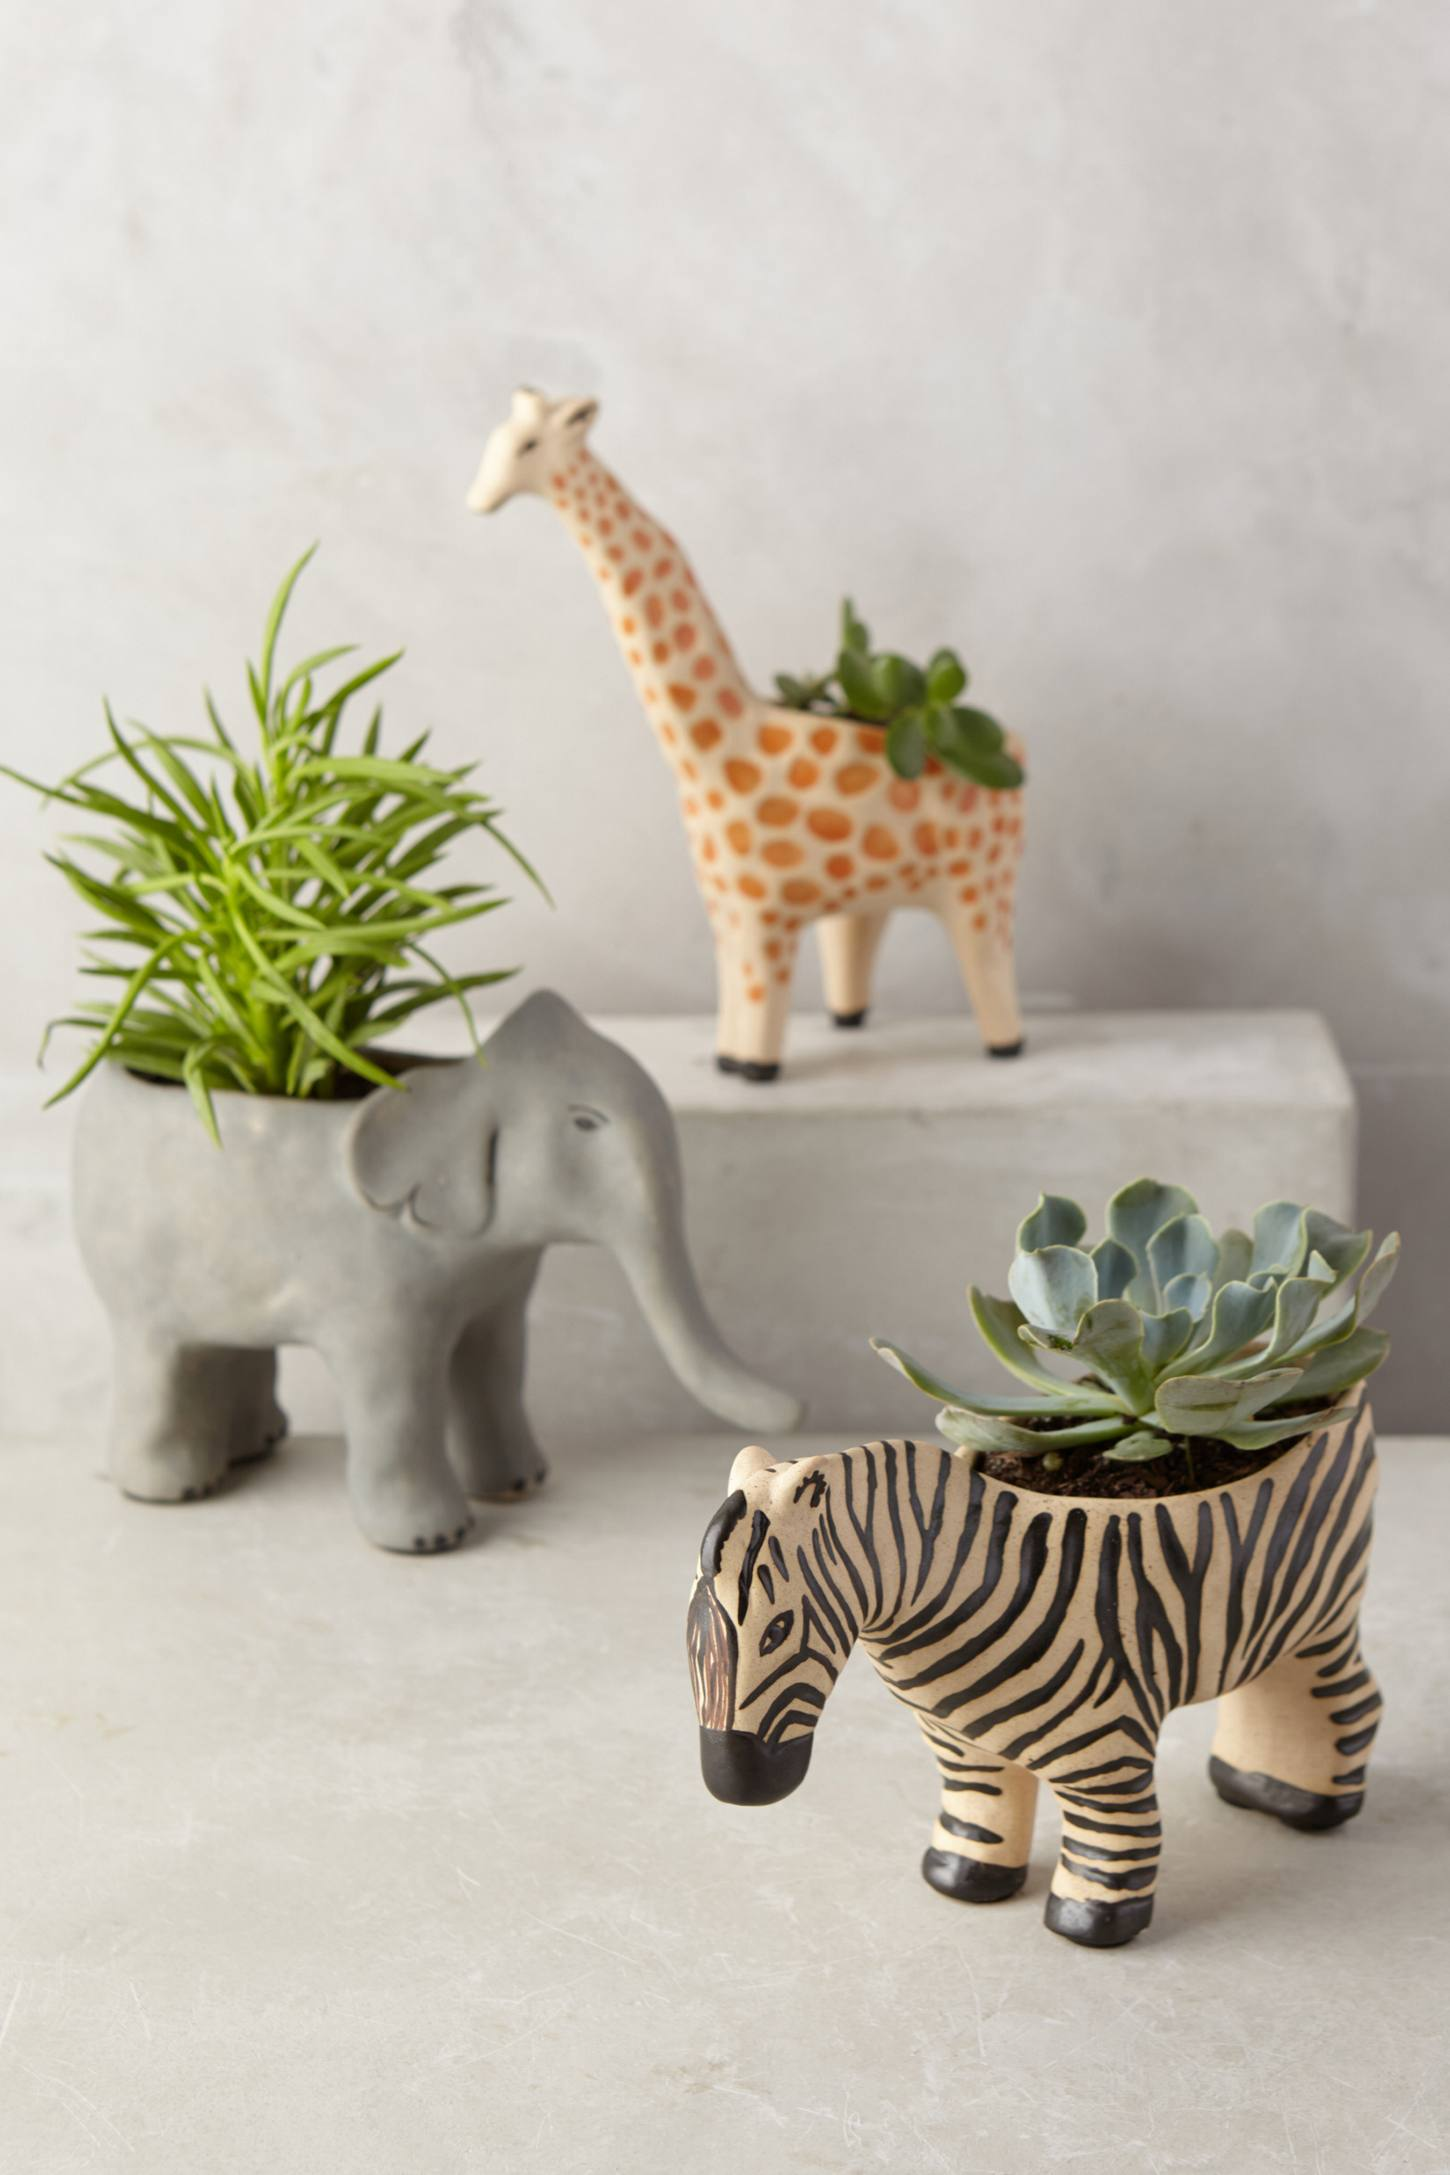 Animal succulent planter